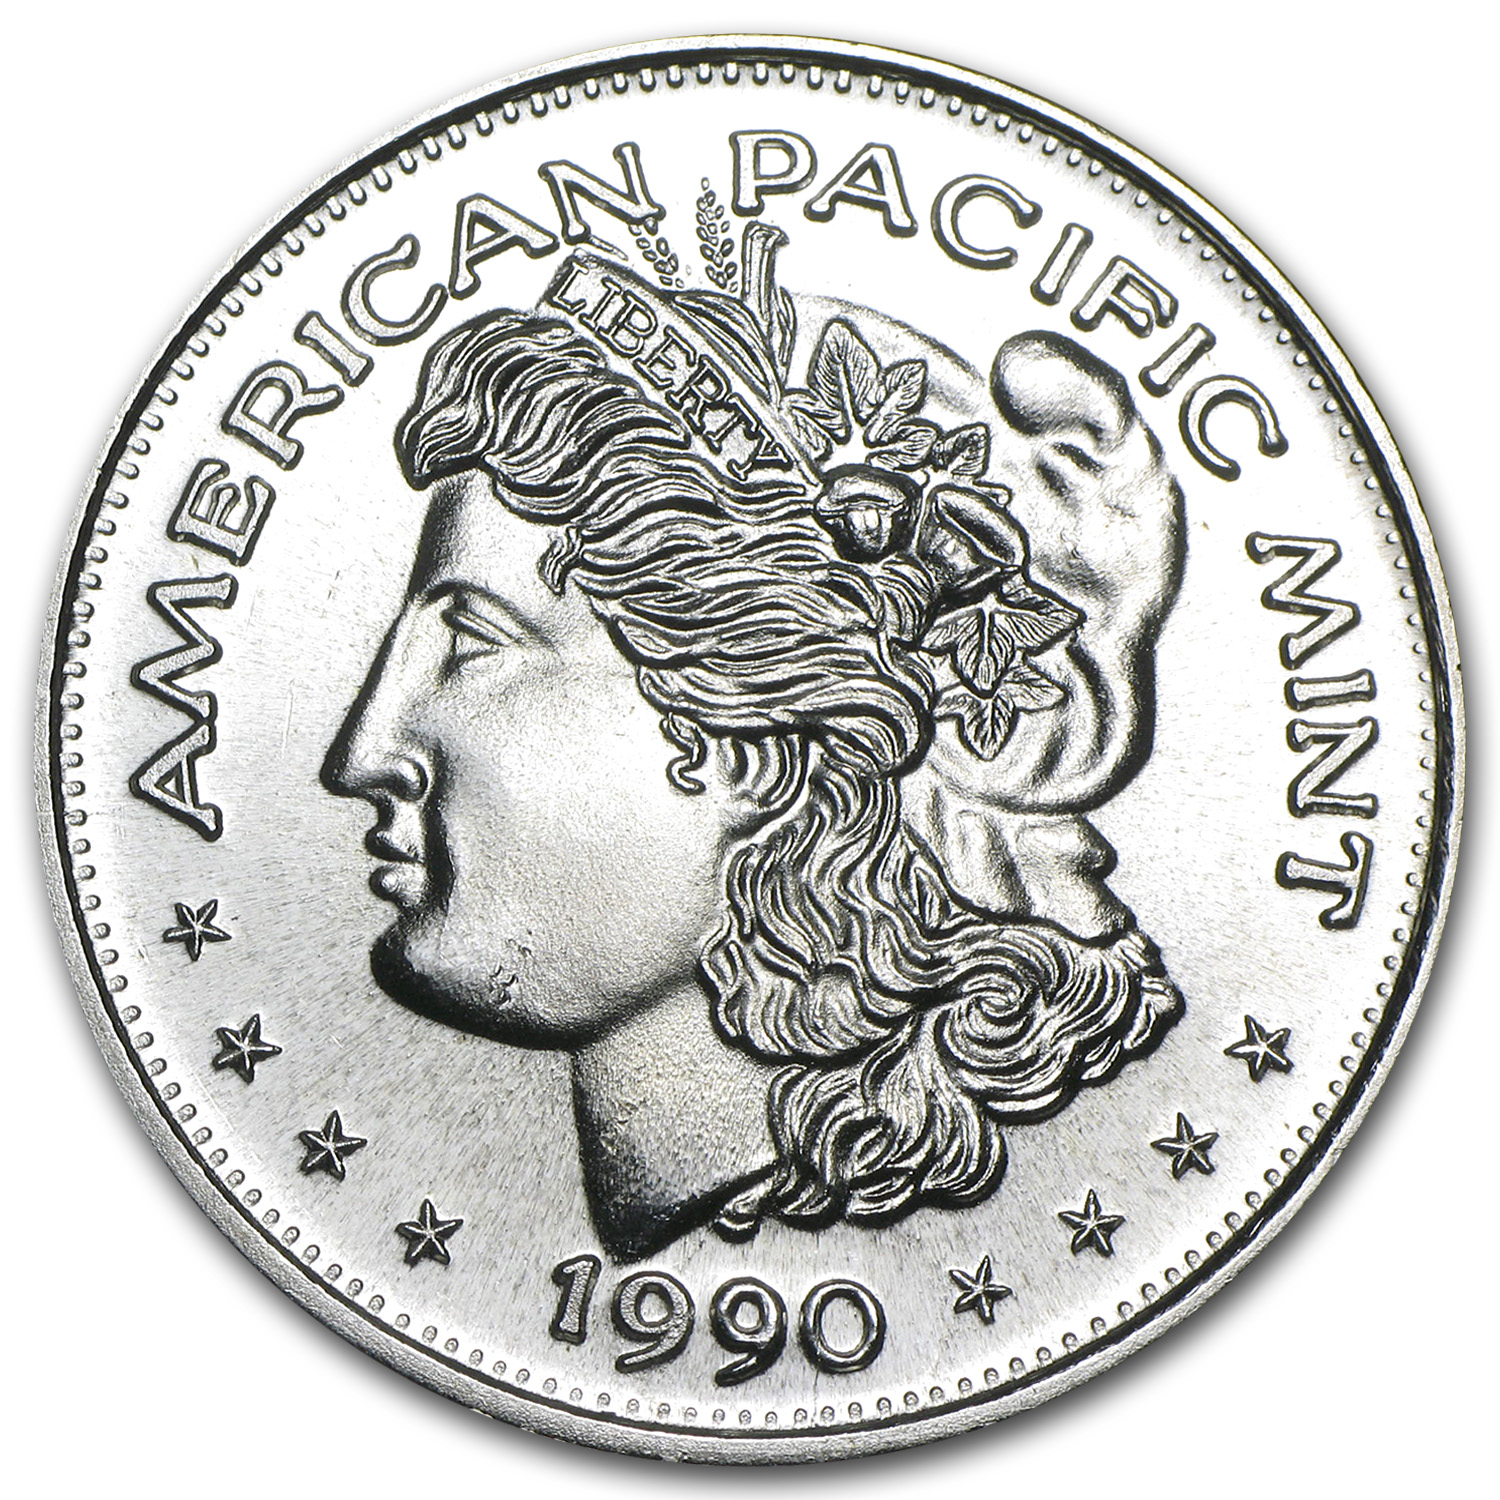 1 oz Silver Rounds - American Pacific Mint (Morgan)